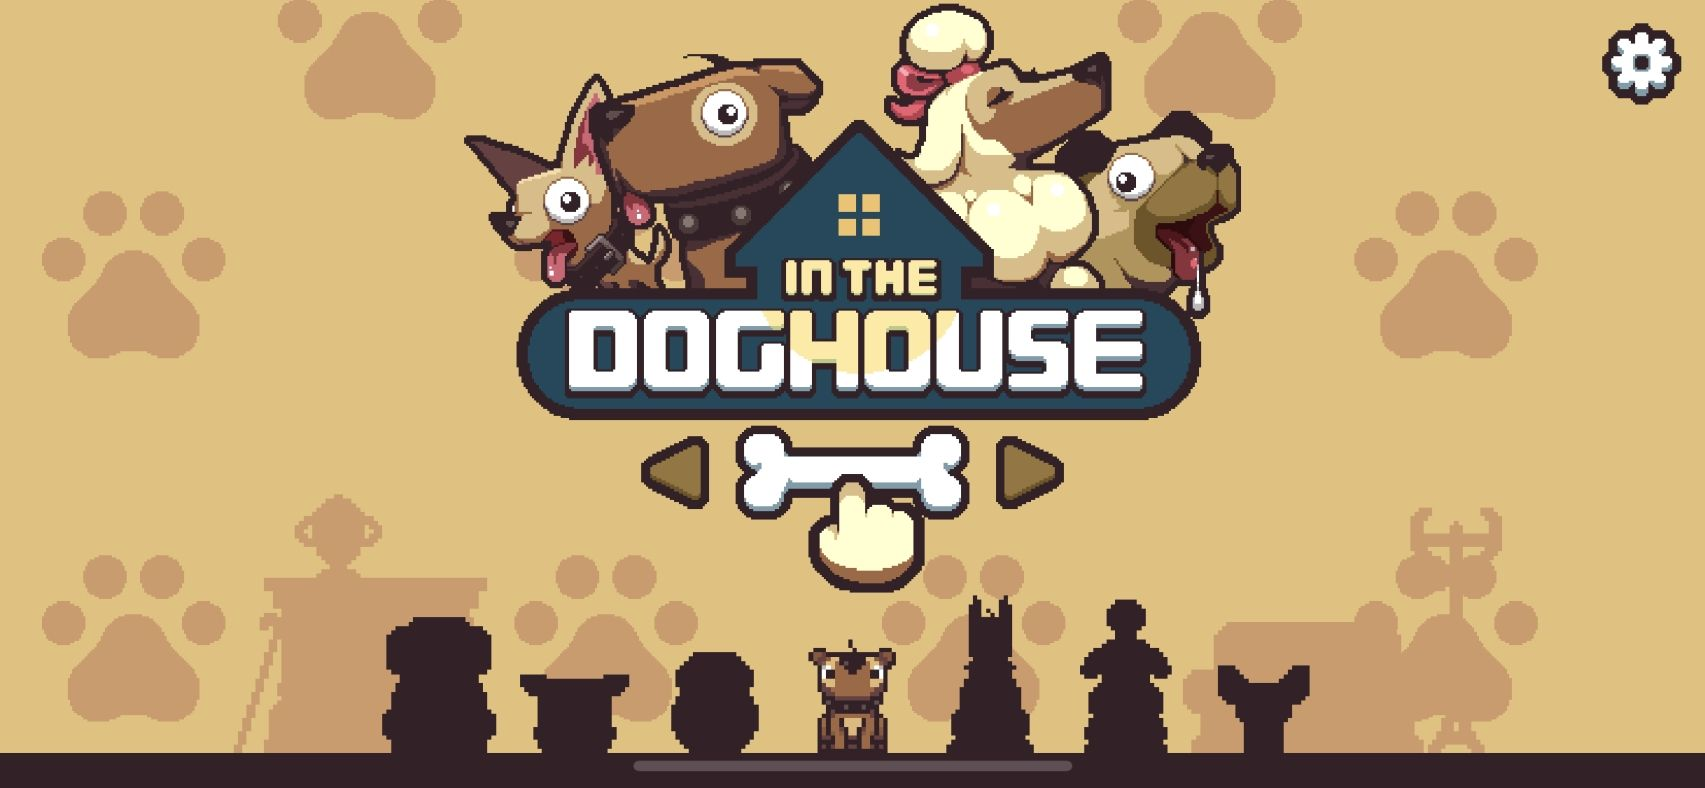 In The Dog House (copie d'écran 1 sur Android)